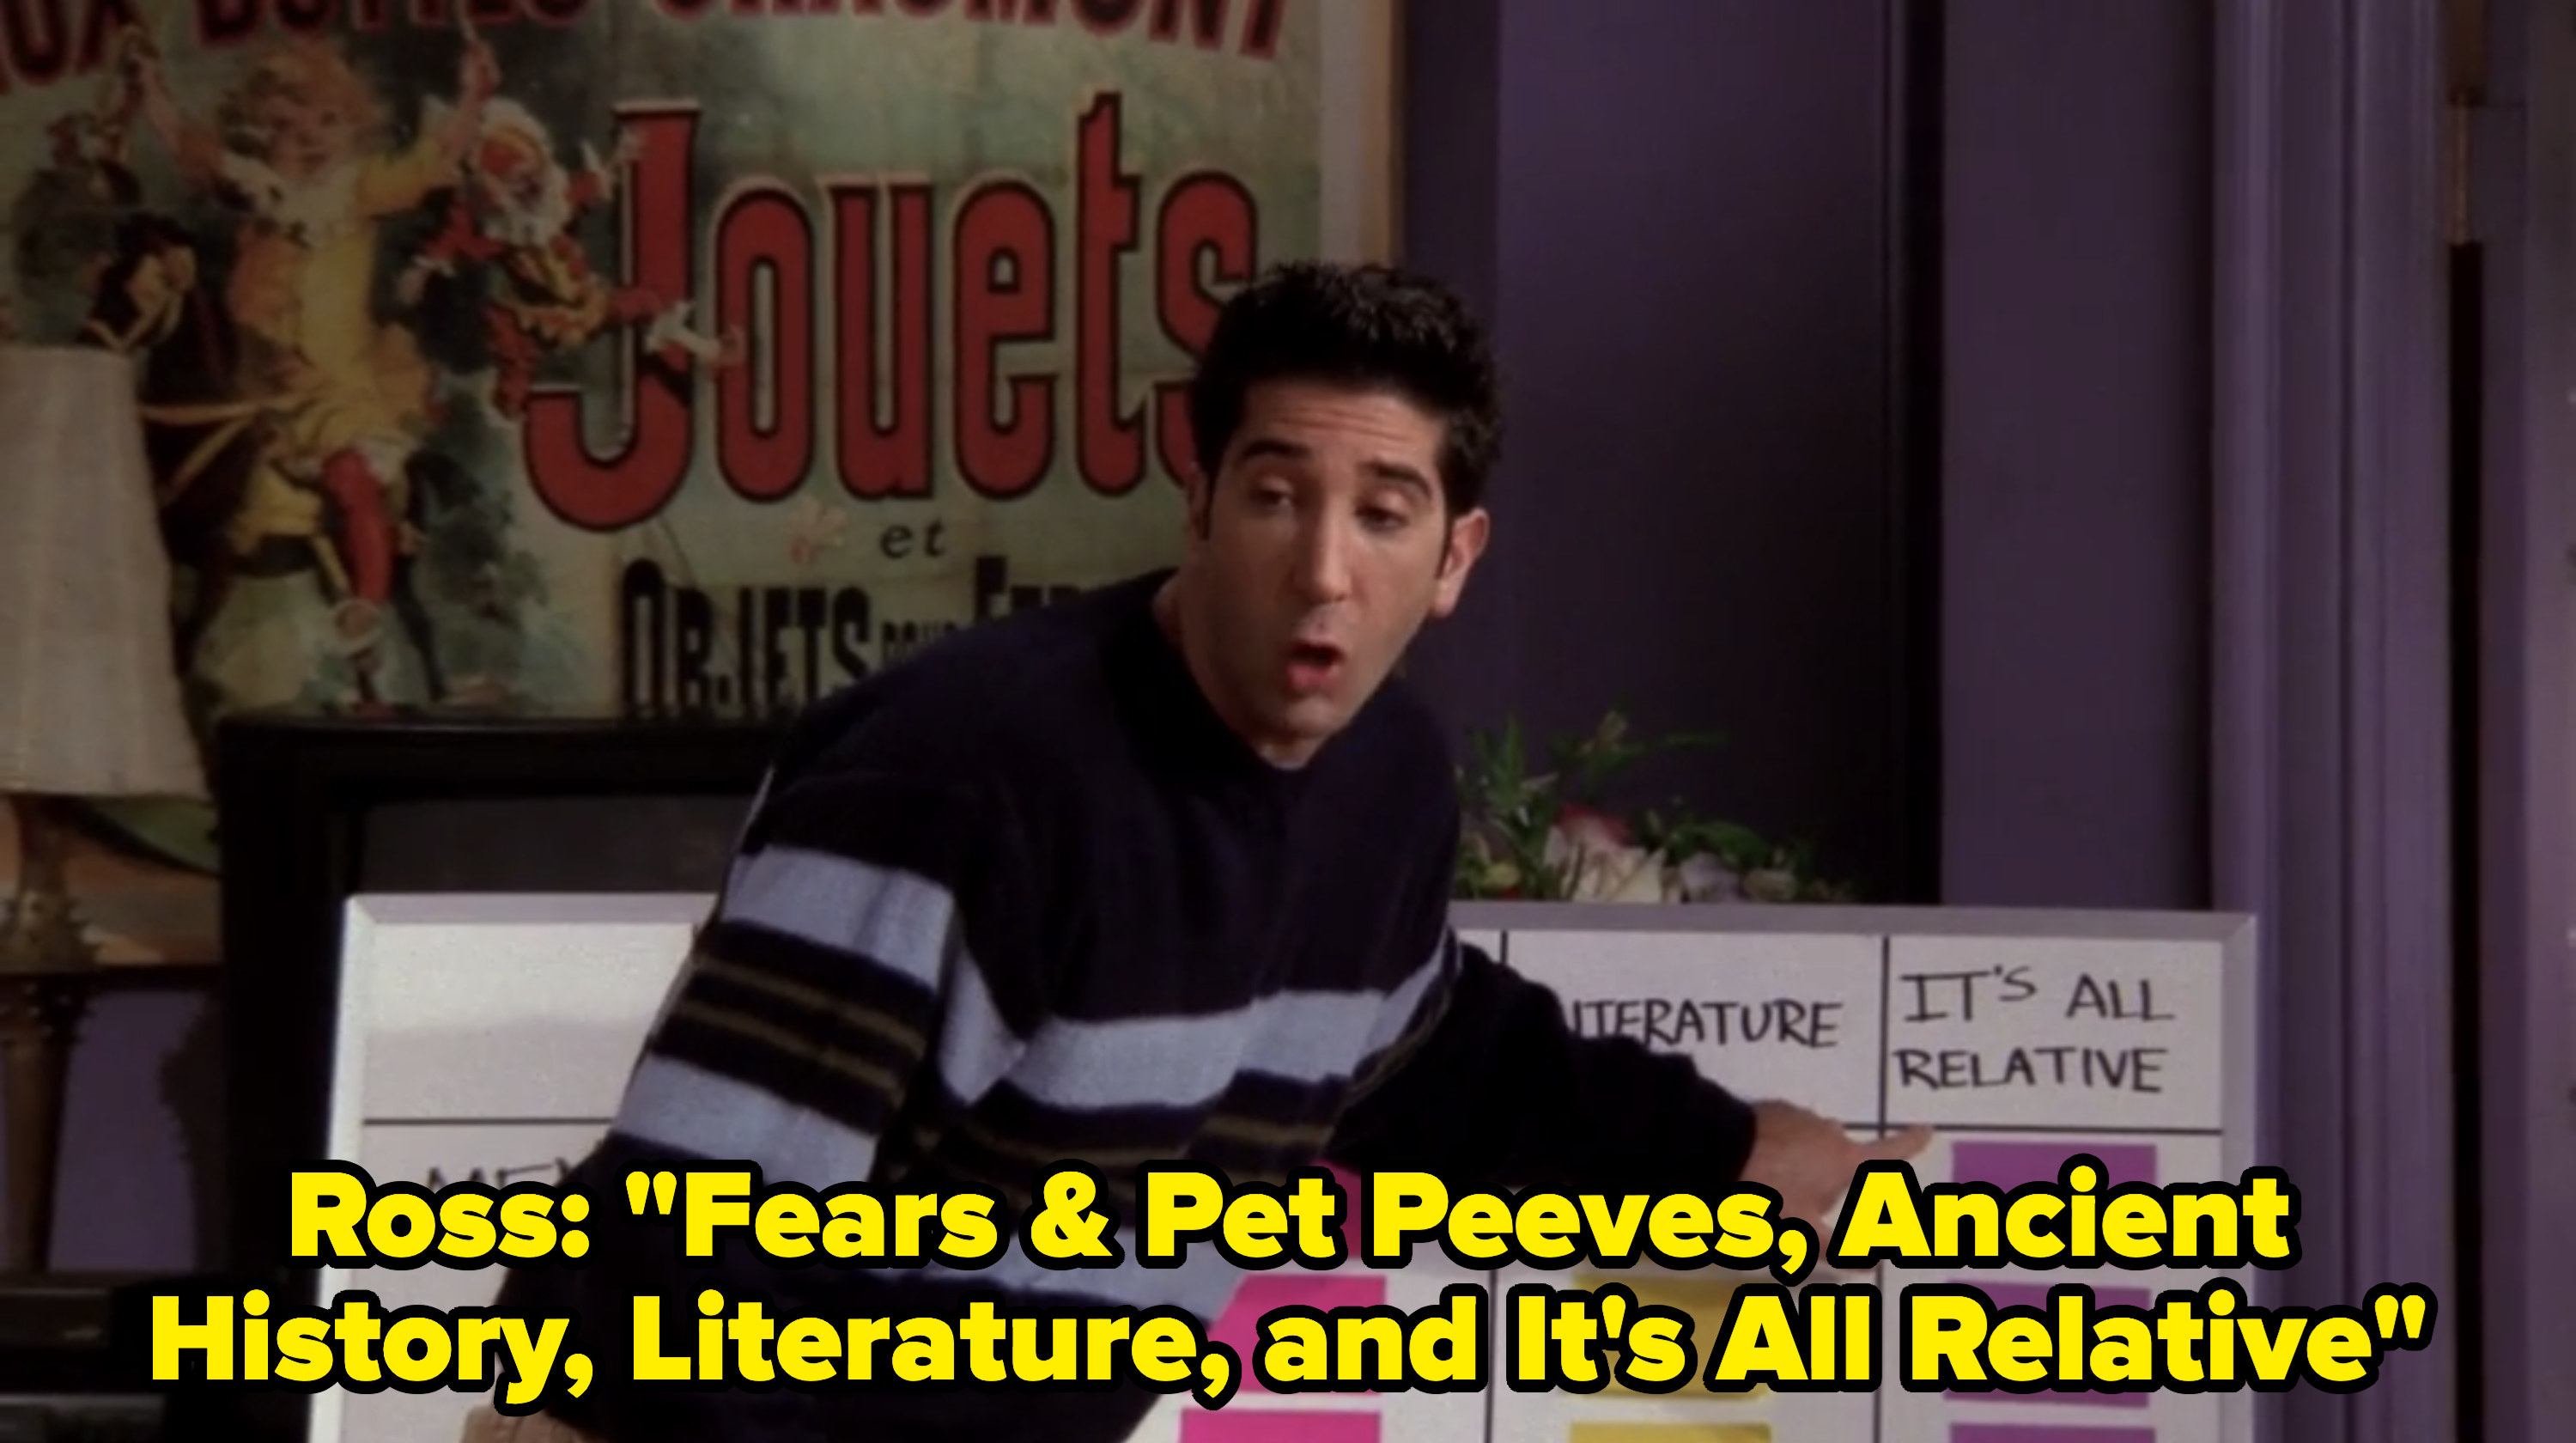 Ross reads the categories to the game